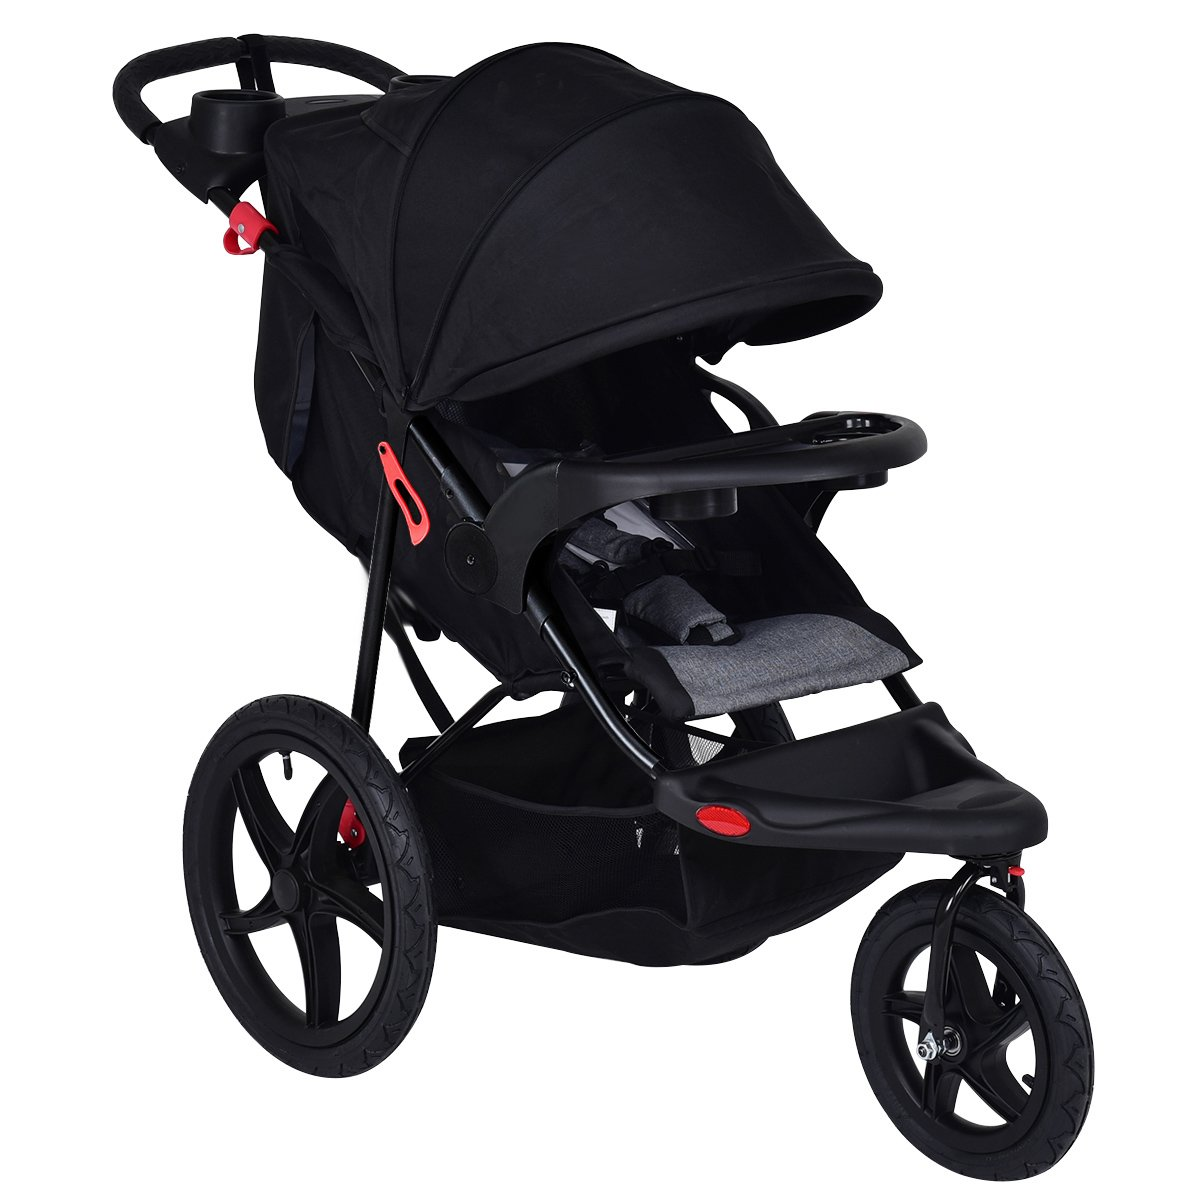 Costzon Baby Jogger Stroller Lightweight w/ Cup Phone Holder by Costzon (Image #1)